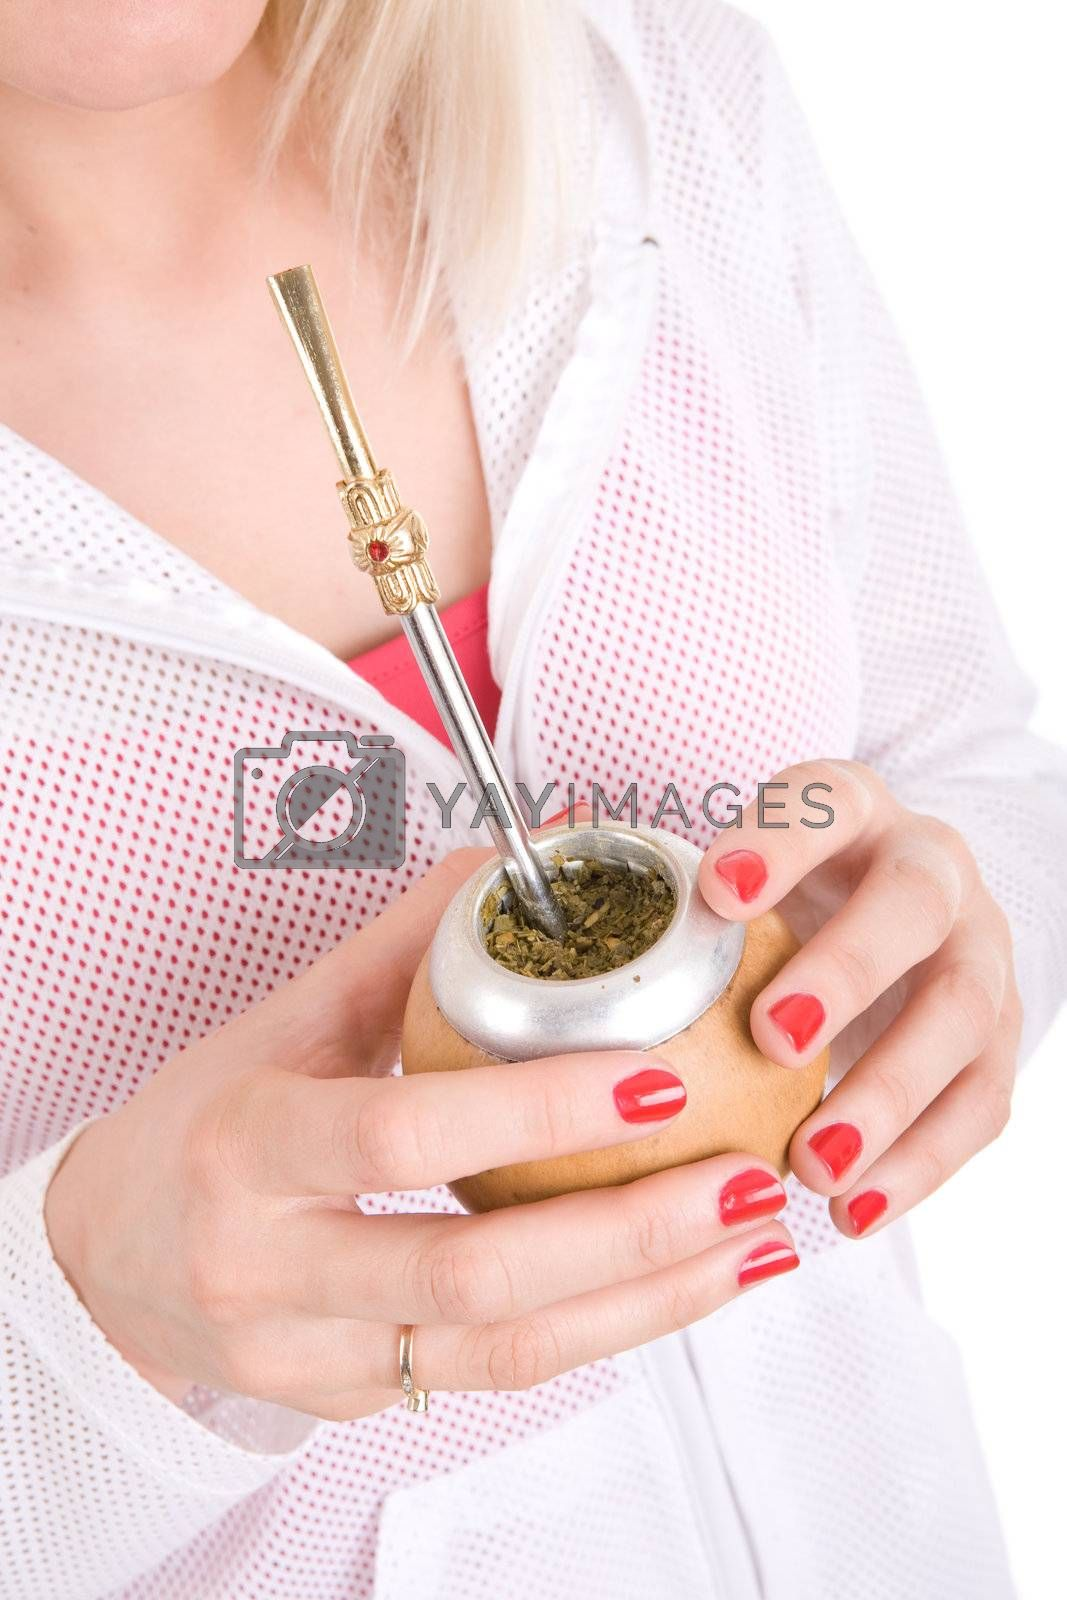 mate in the hands of white girl